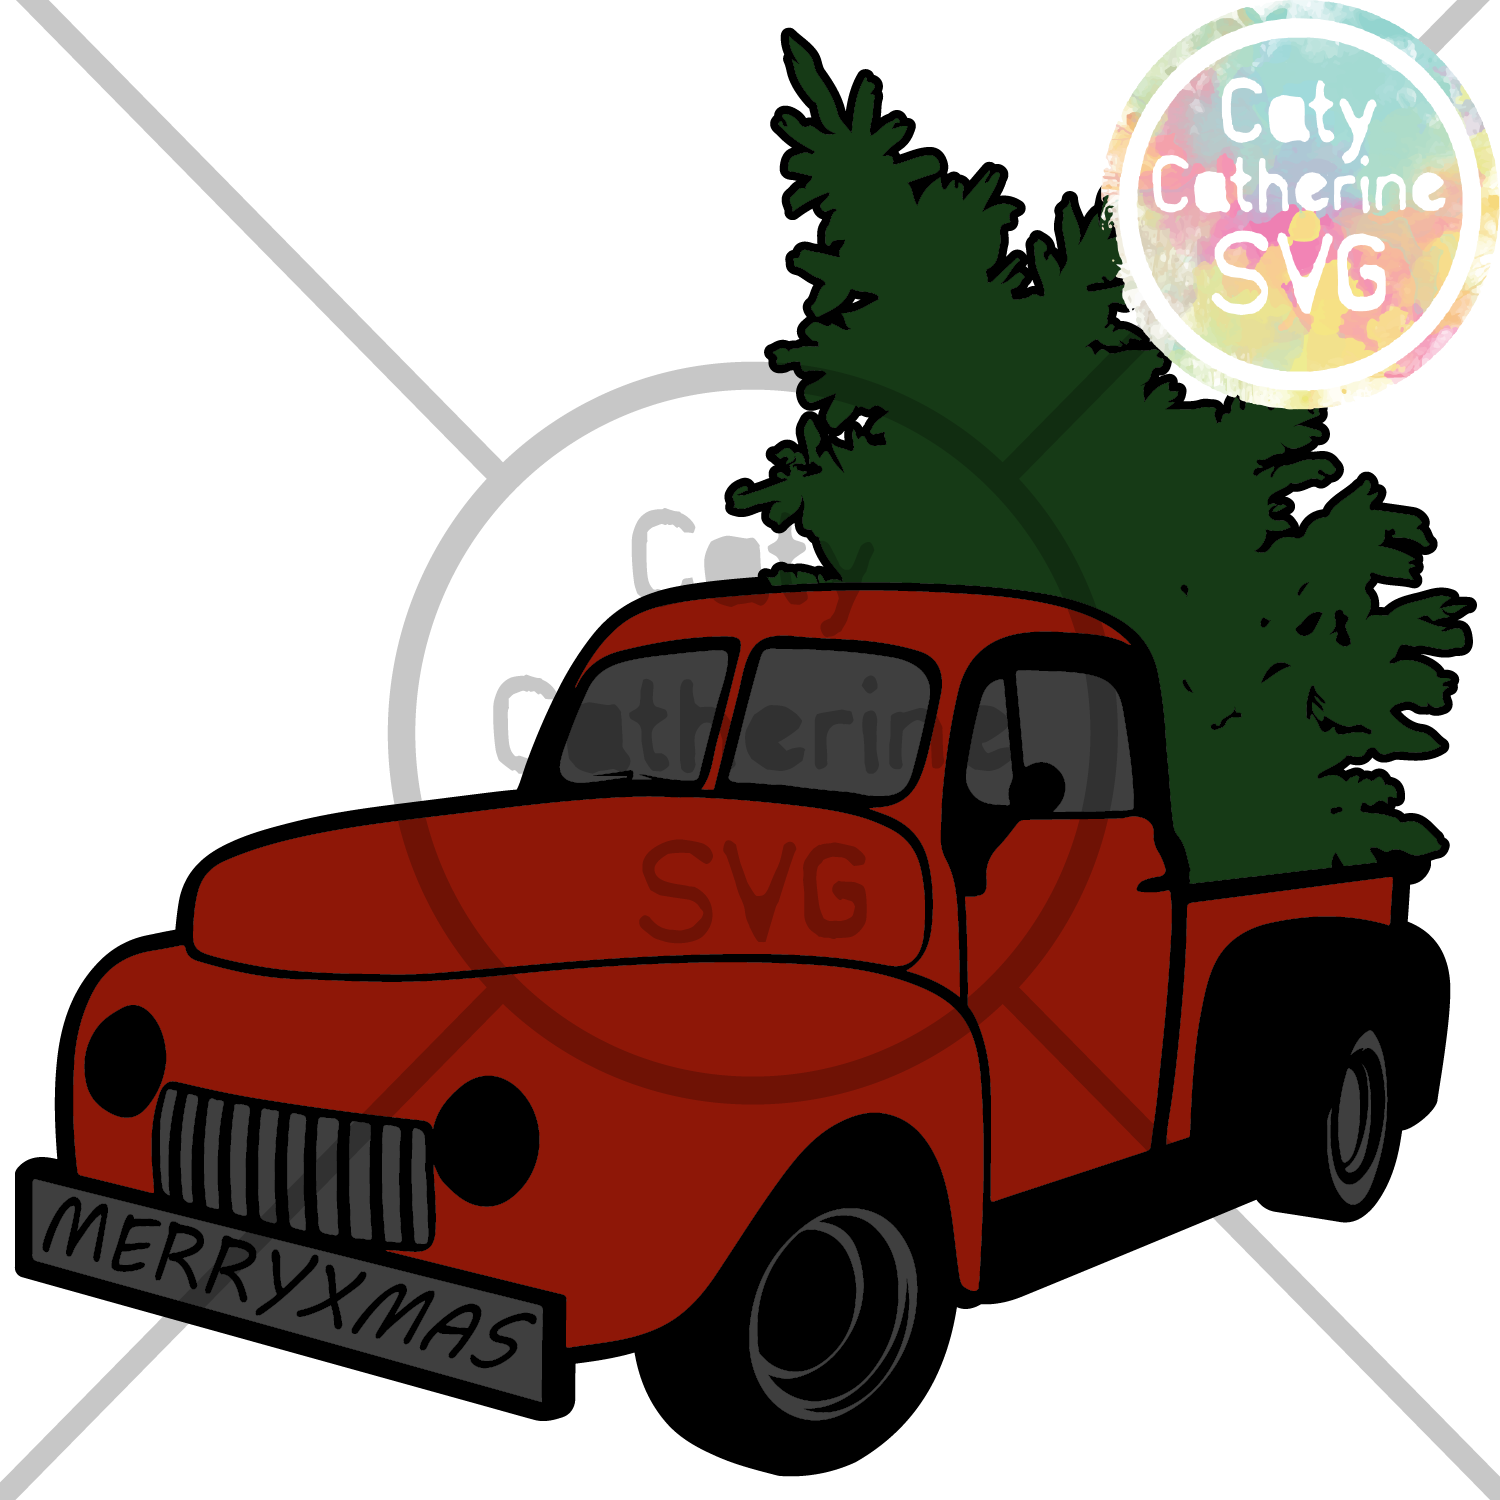 Christmas Tree Truck Svg Free.Commercial Use Free Svg Files Designed By Caty Catherine